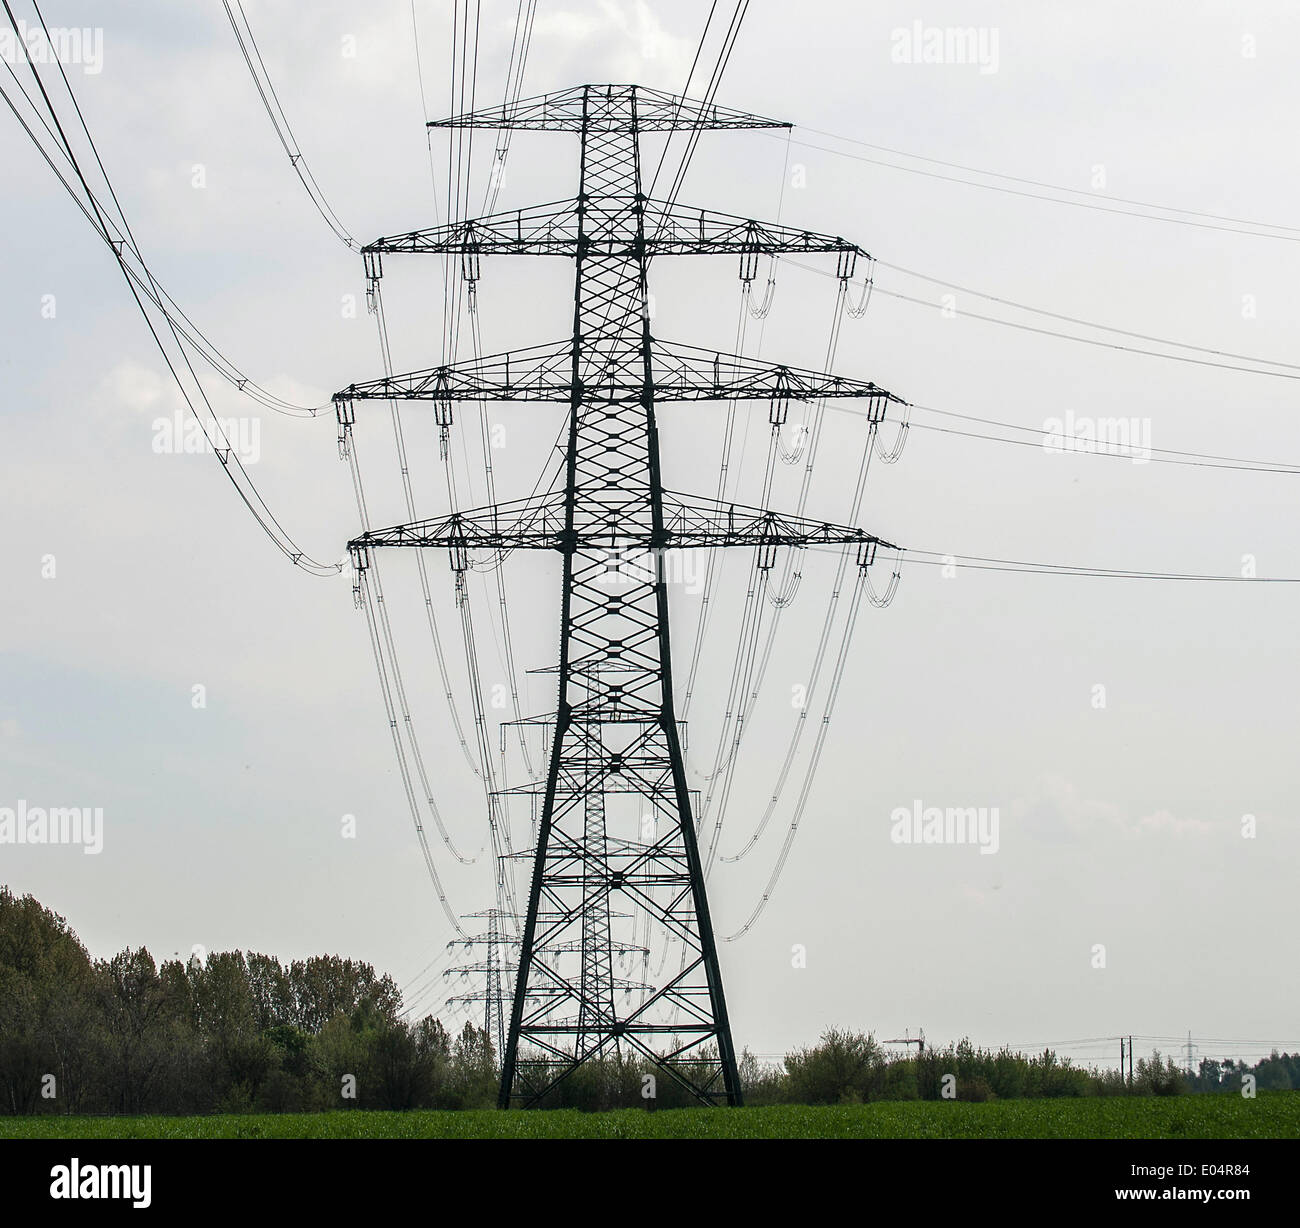 Berlin, Germany. 22nd Apr, 2014. High voltage power lines span ...